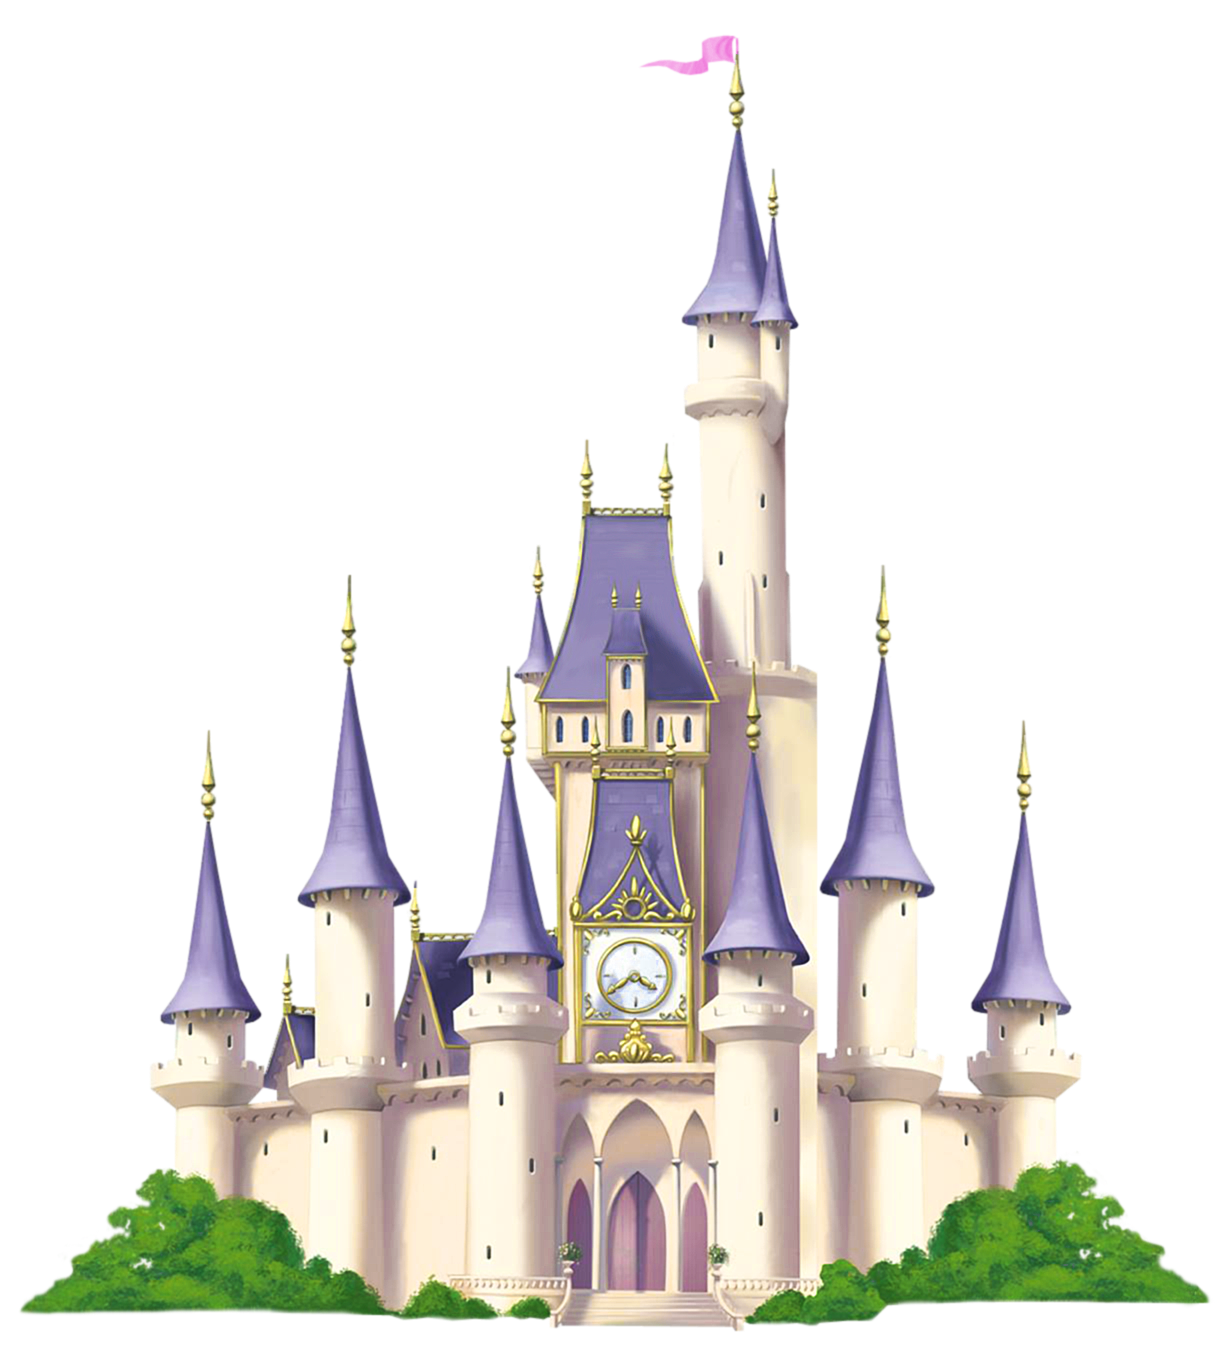 Magic kingdom castle png. Transparent clipart picture gallery